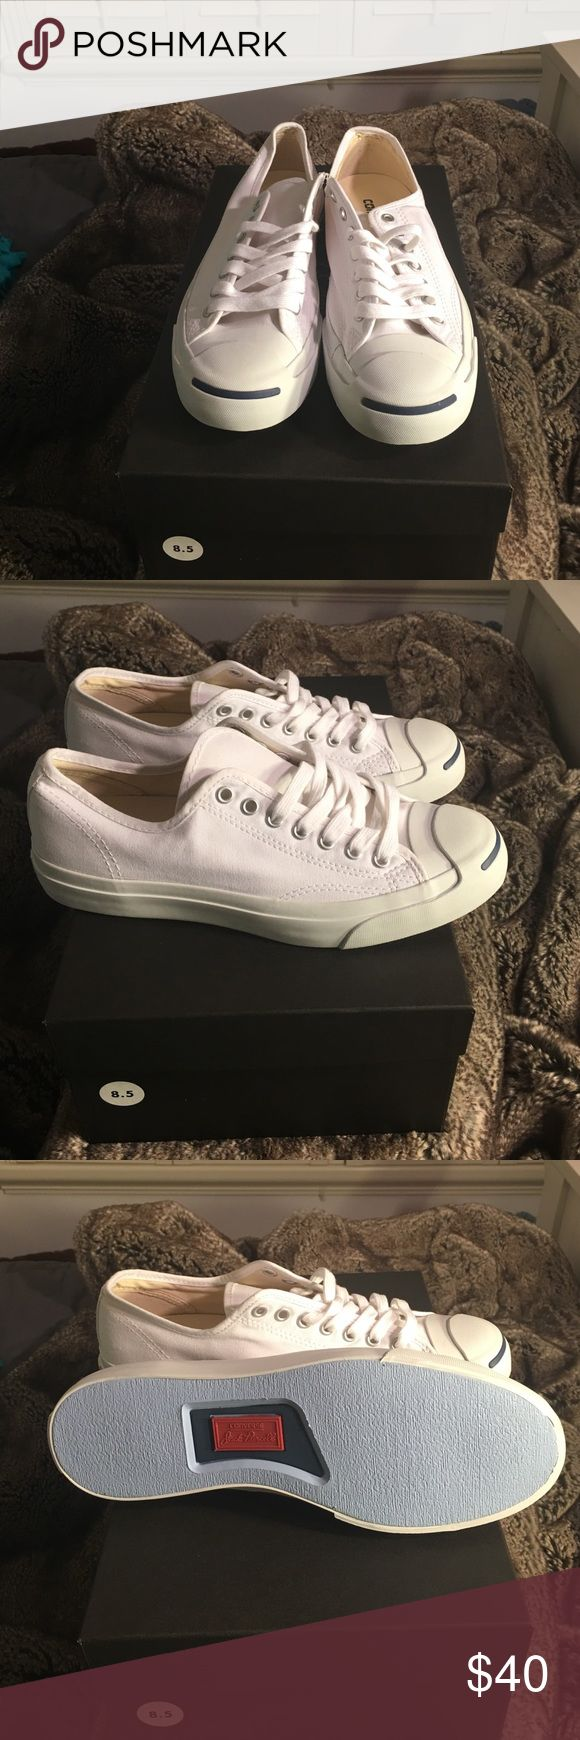 Converse Jack Purcell Size 8.5 men 10 WO's All white brand new Jack Purcell Converse Converse Shoes Sneakers